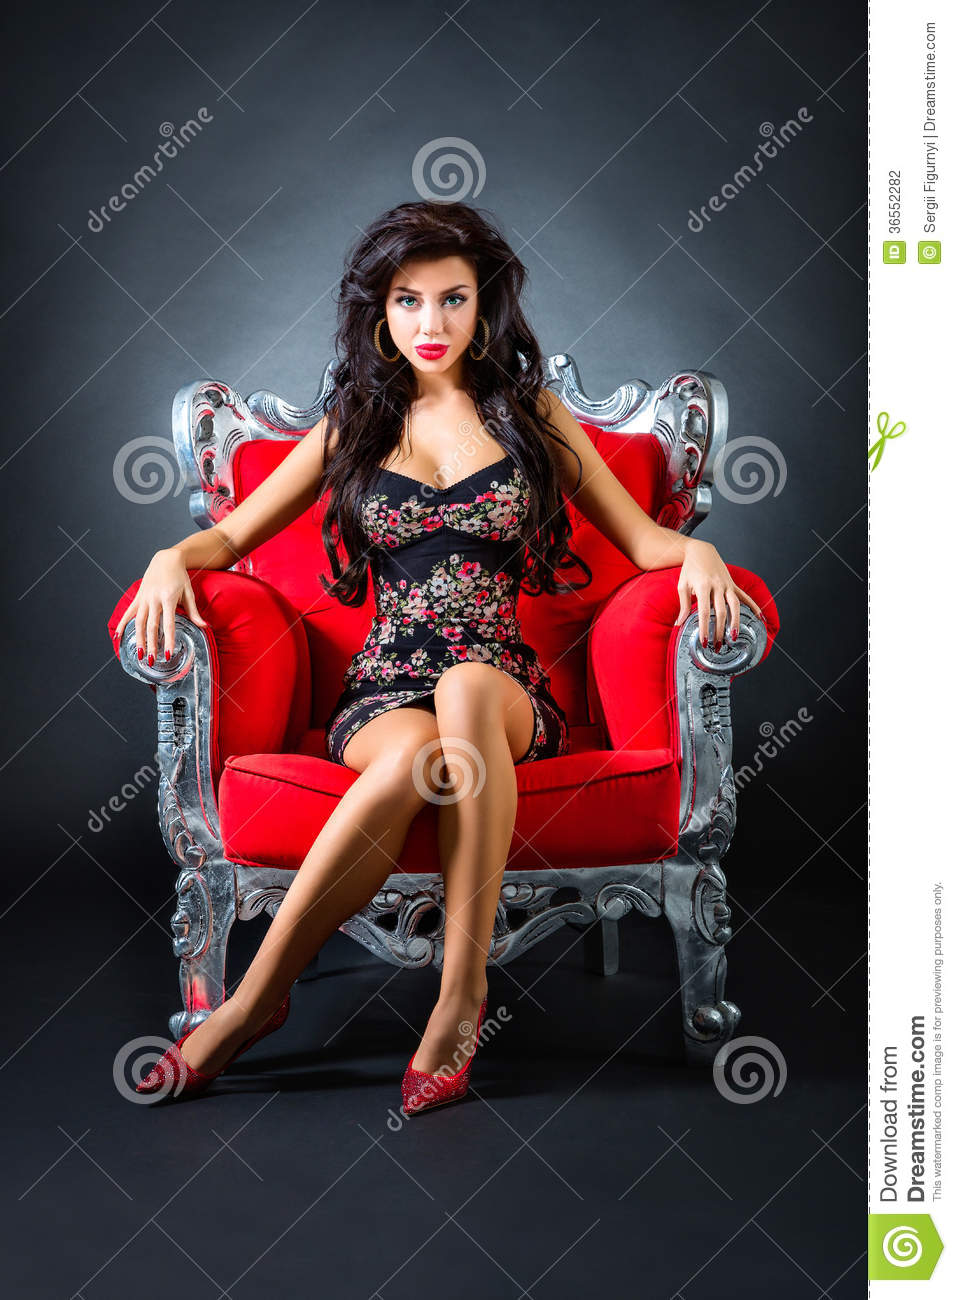 Red chair photography - Royalty Free Stock Photo